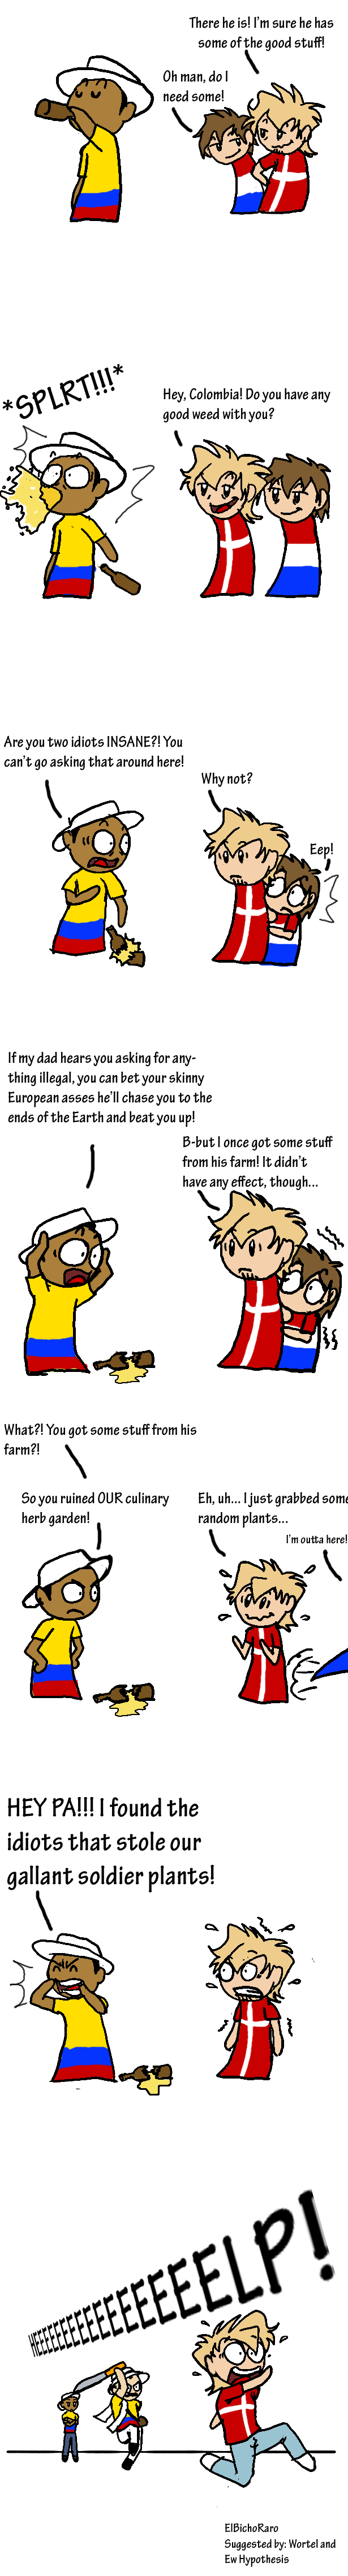 Never Ask Colombia Again For That! satwcomic.com